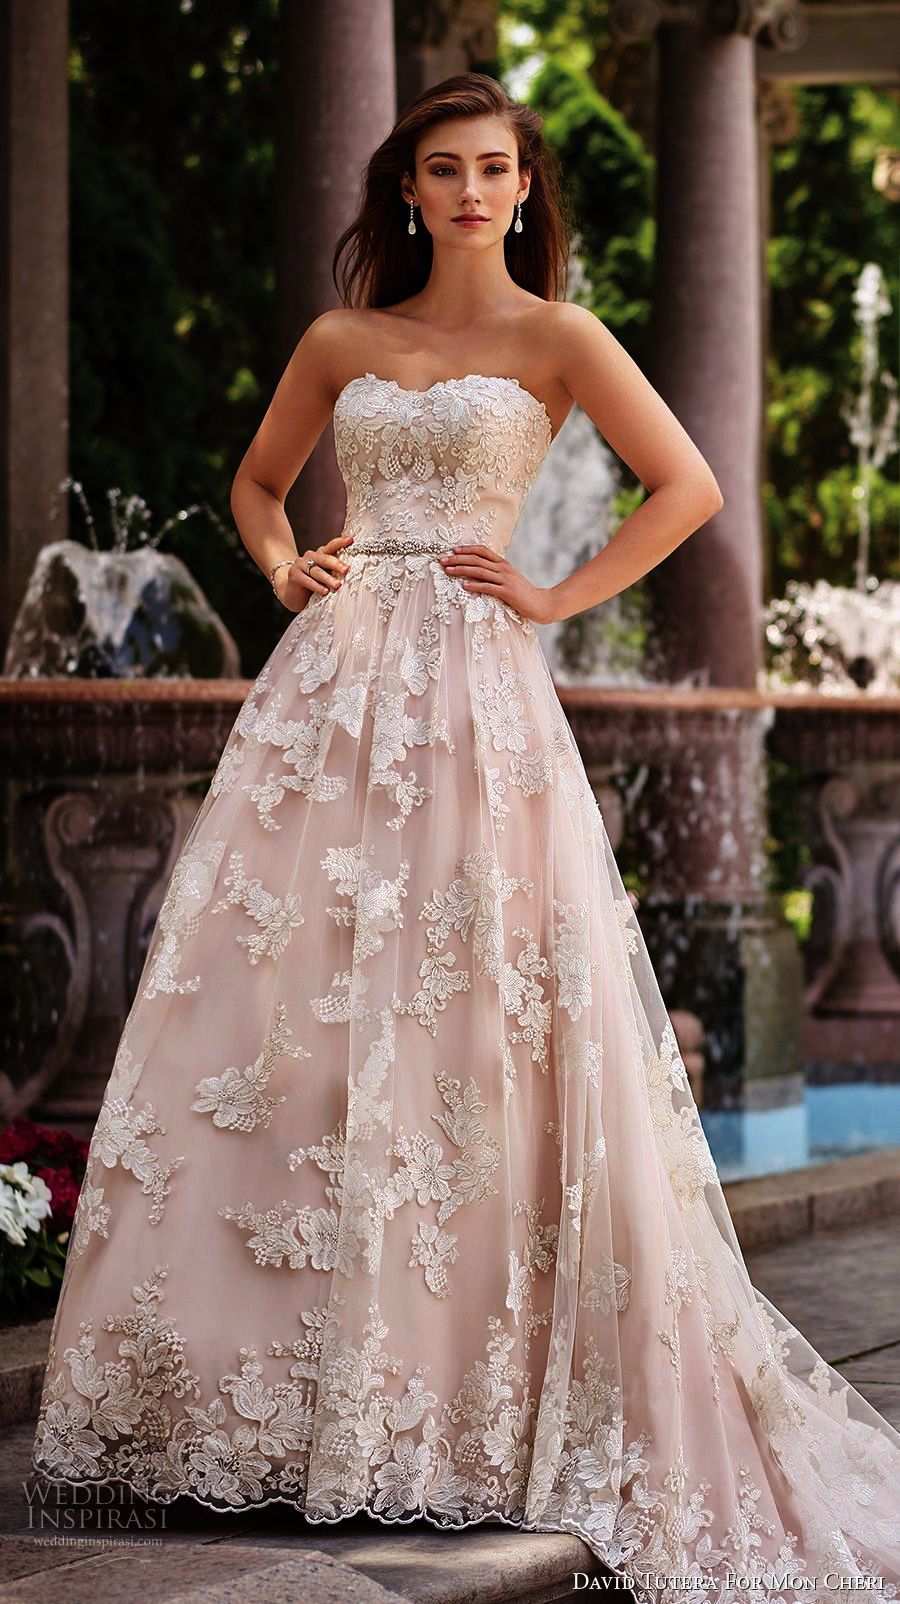 Lace mermaid wedding gowns with long trains  Lace Mermaid Wedding Gowns With Long Trains Beautiful Strapless